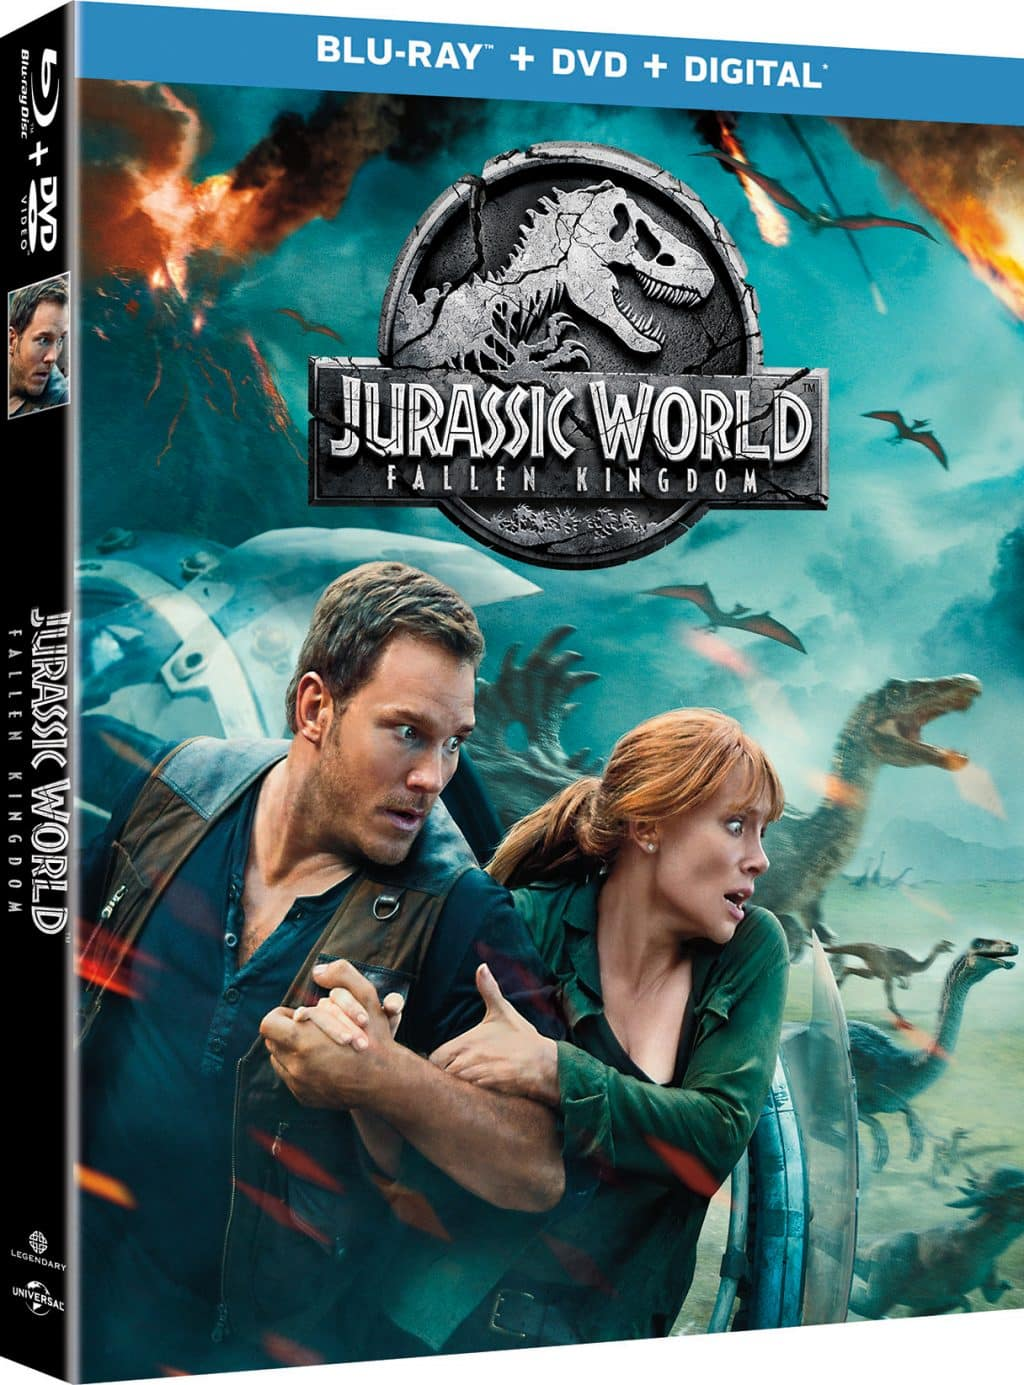 Lifestyle Blog Post Ideas 2018 Coming Soon Jurassic World Fallen Kingdom Arrives On